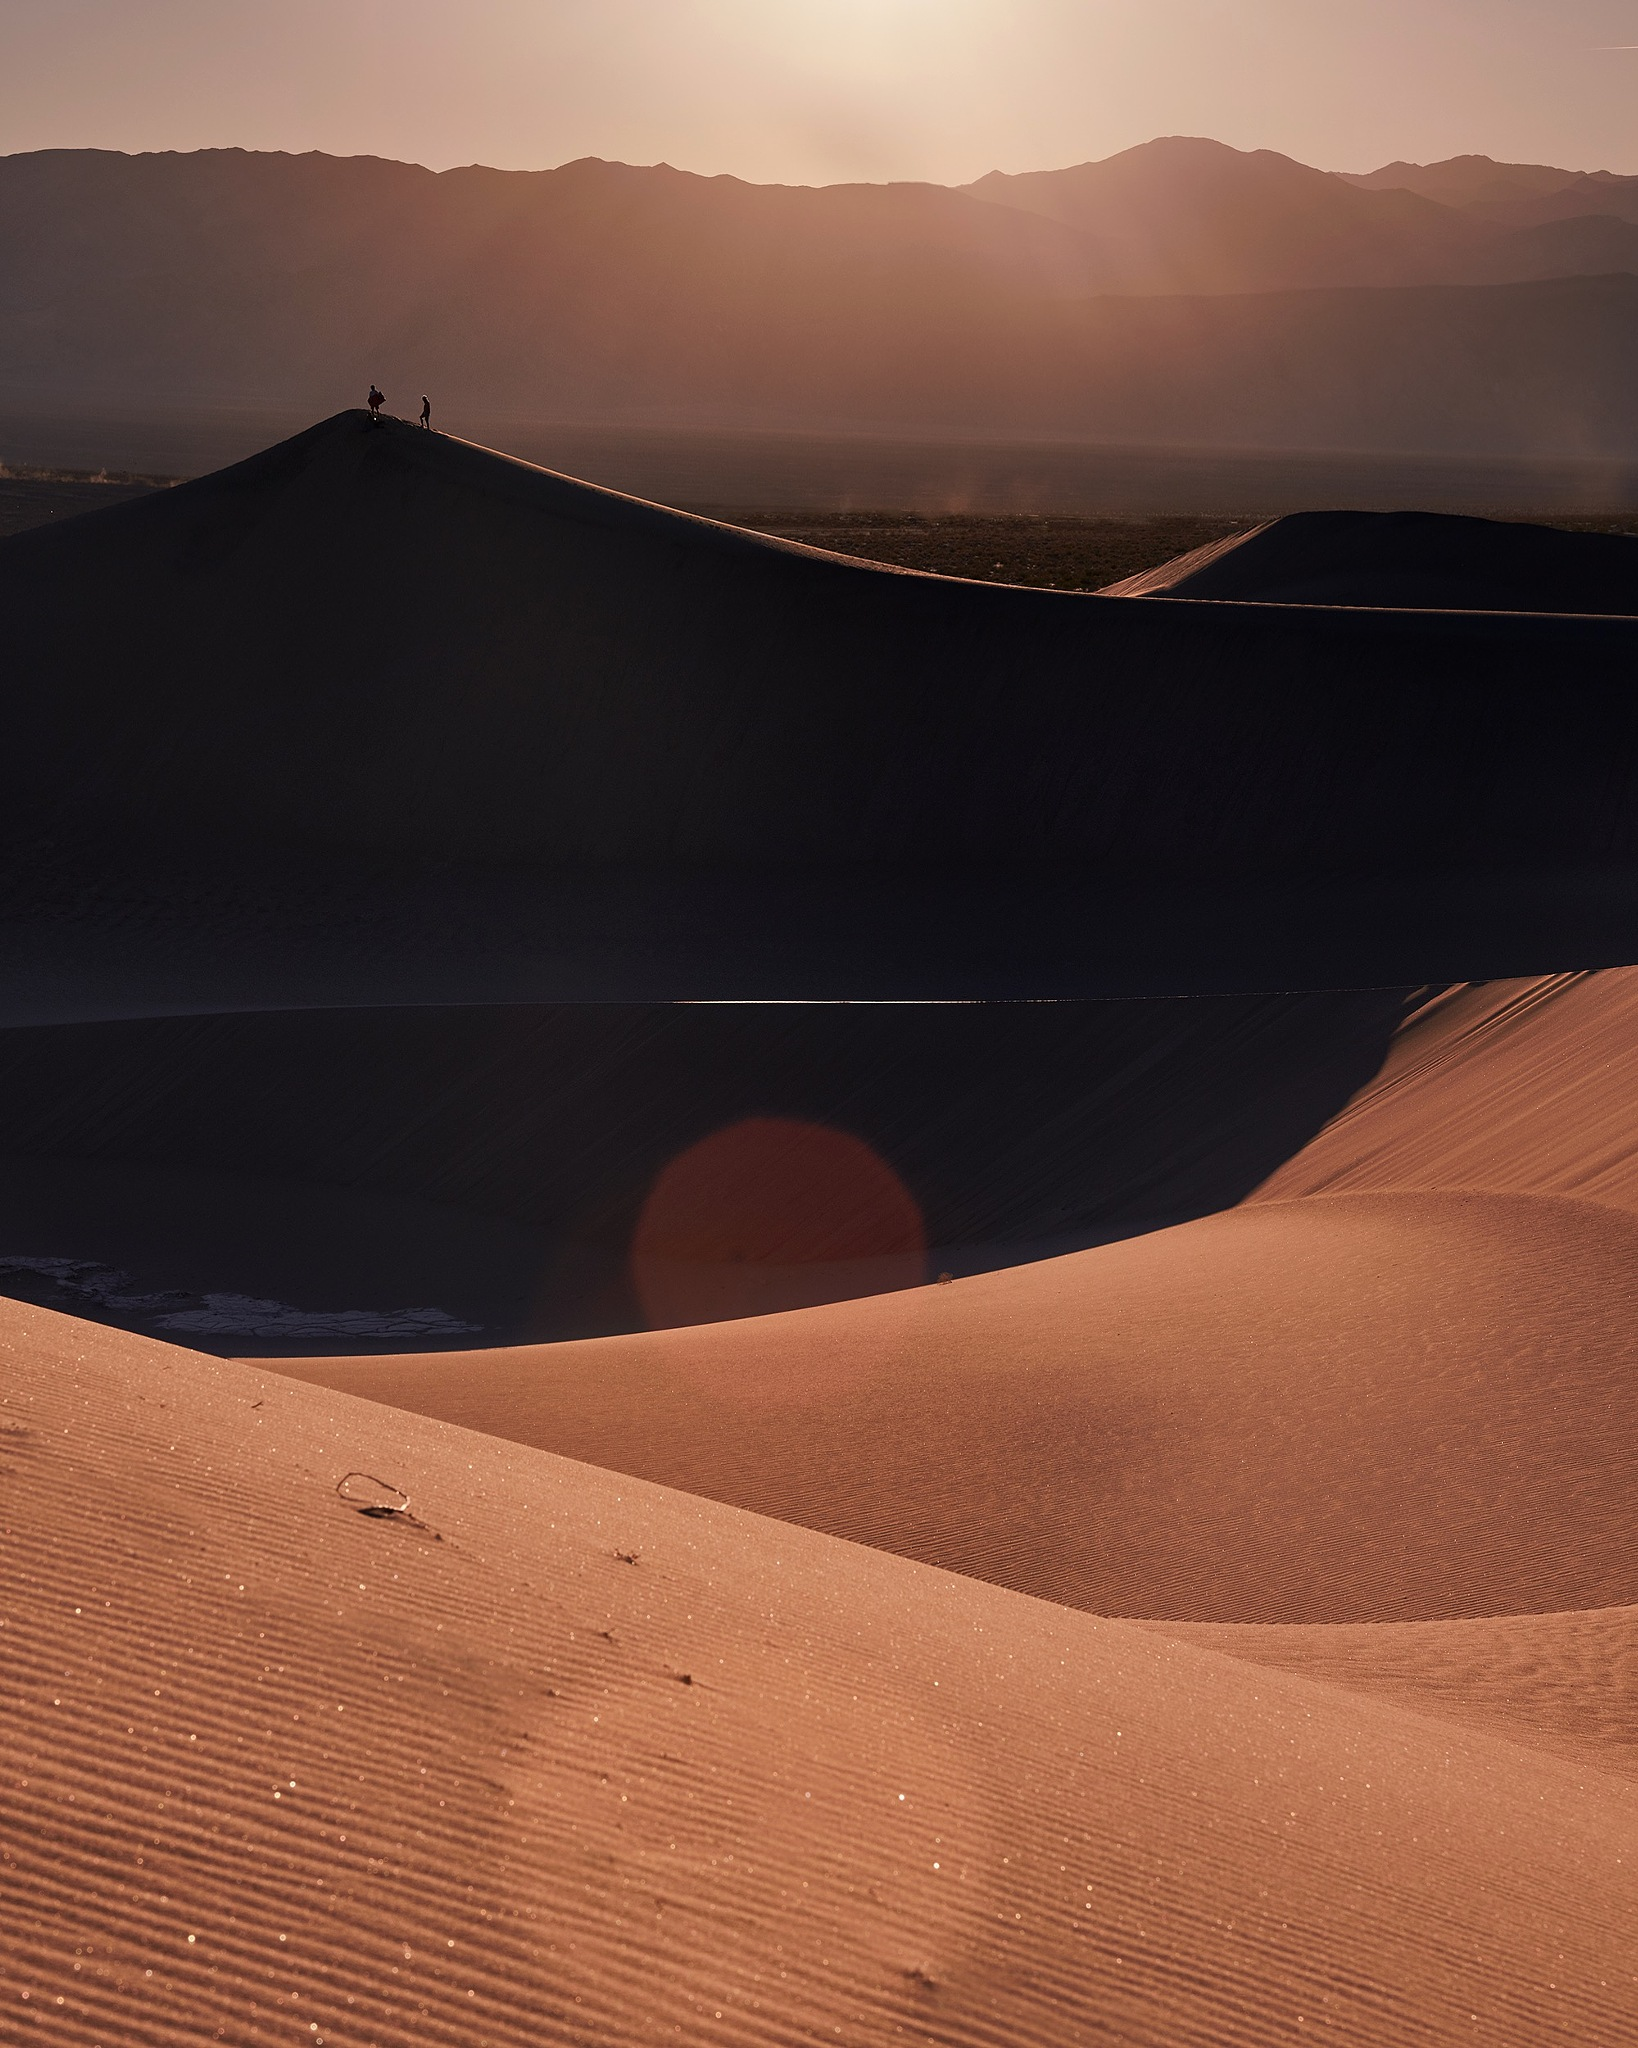 Mesquite Flats by missleadinglines